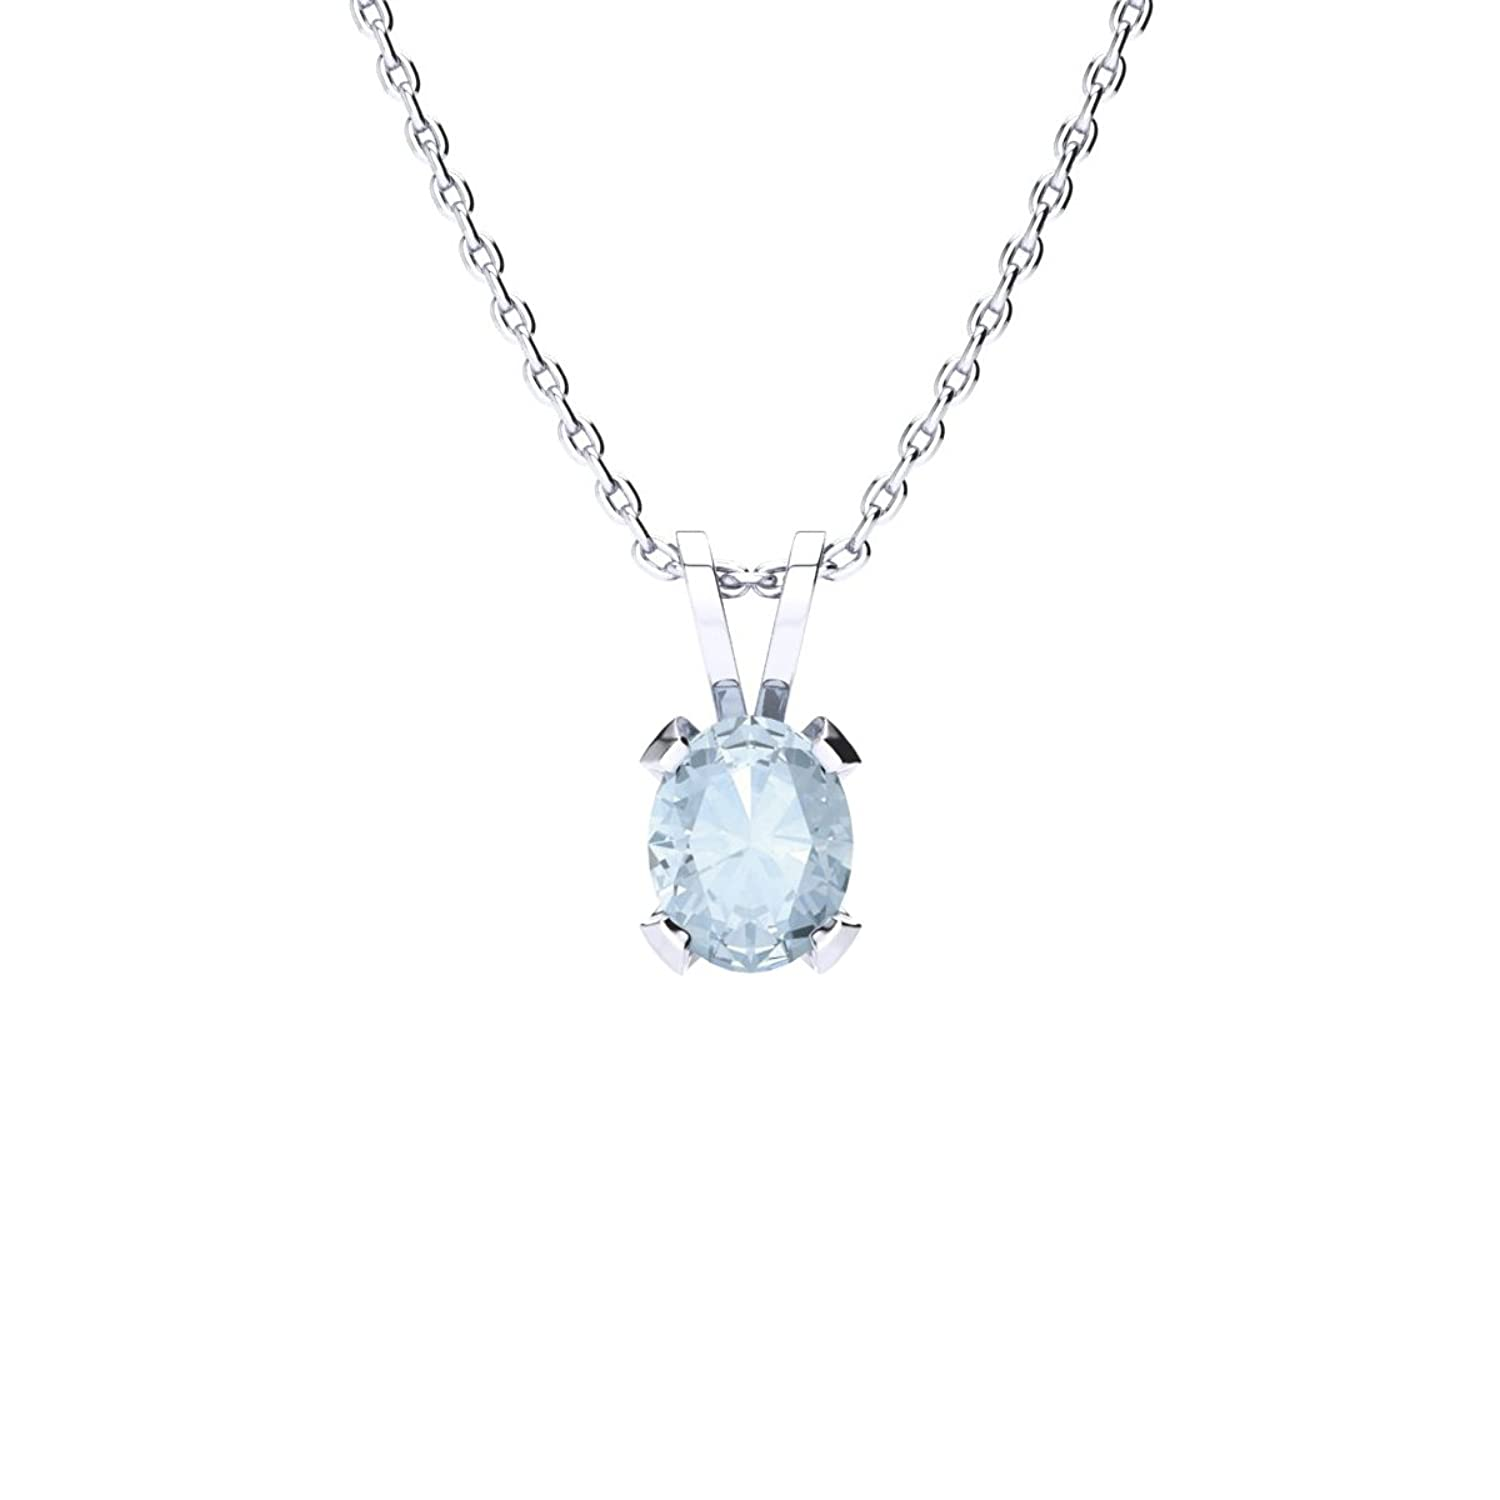 3/4 Carat Oval Shape Aquamarine Necklace Available In Yellow Gold, Rose Gold and 925 Sterling Silver, 18 Inches